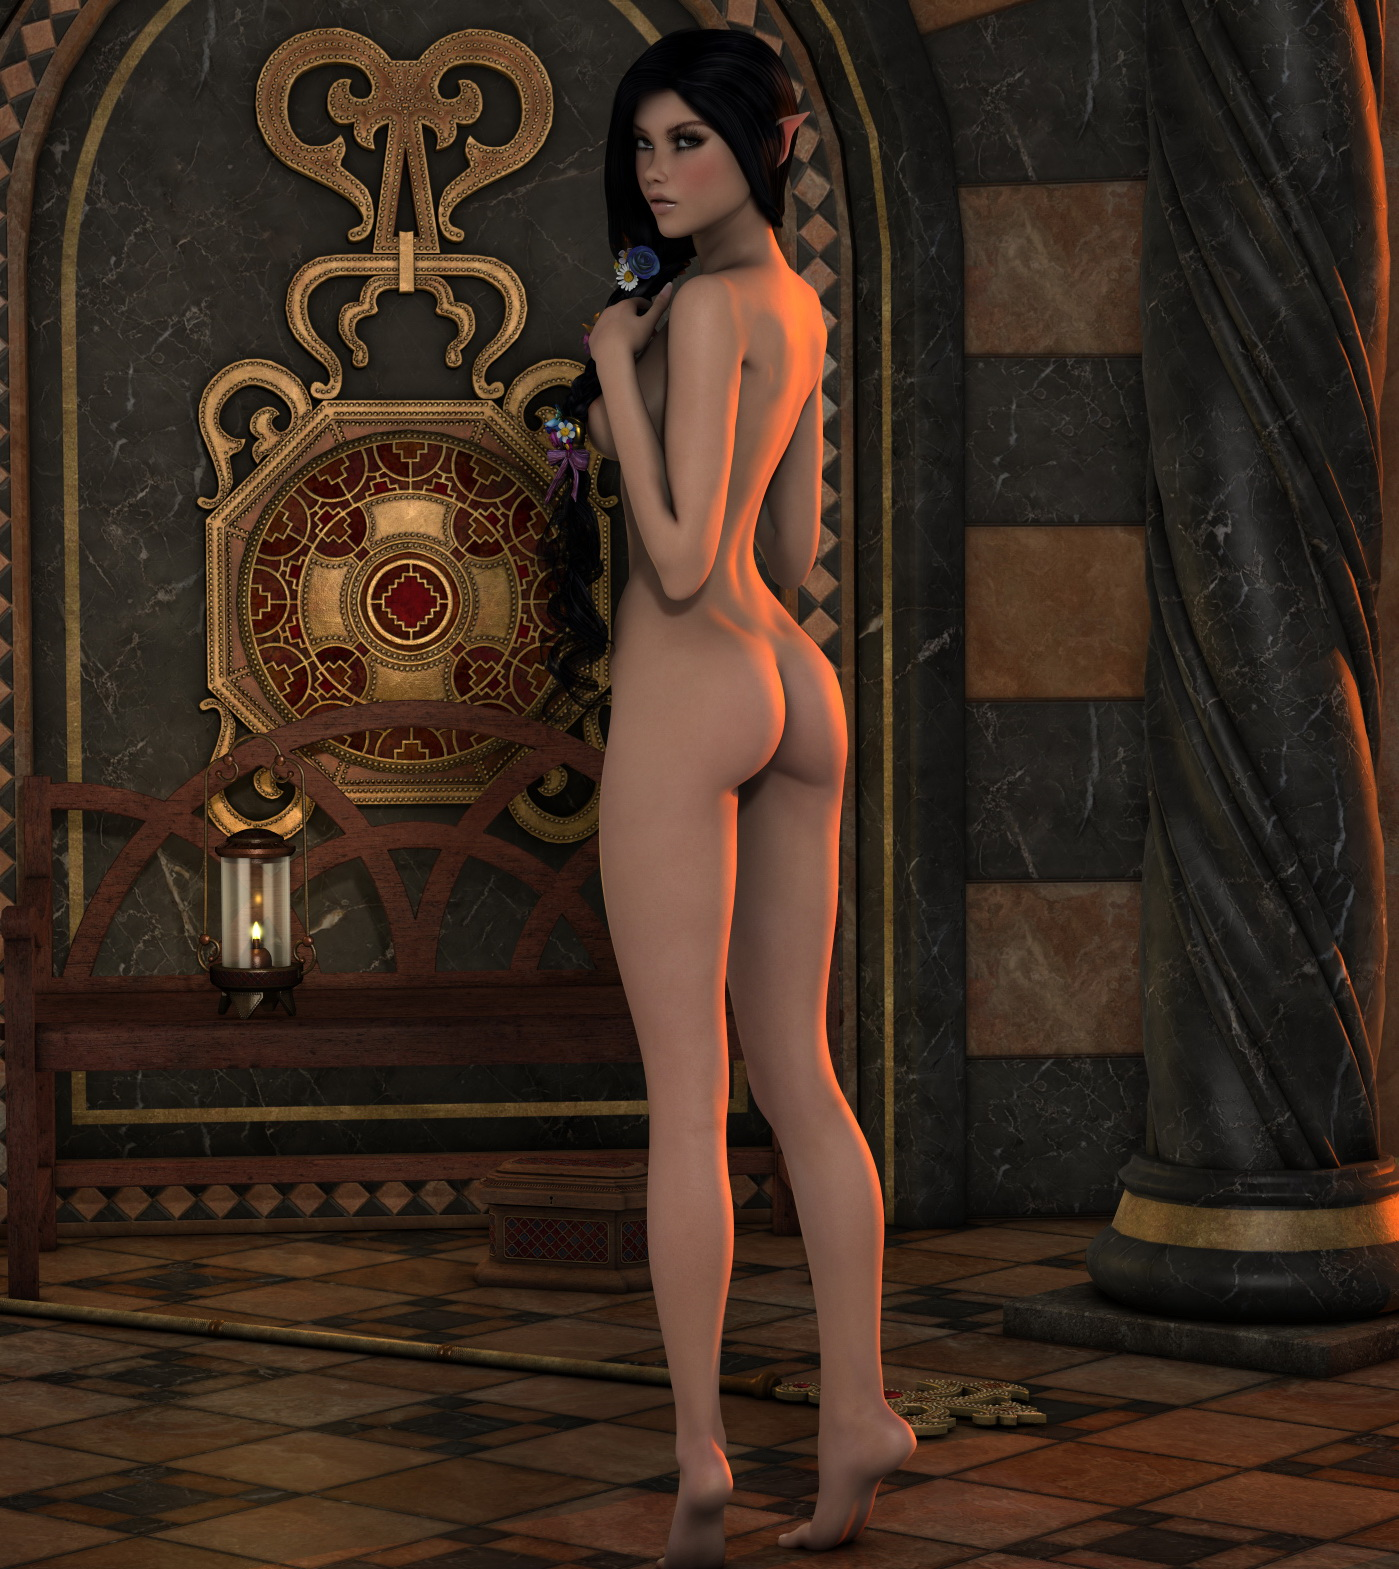 Free nude elfin 3d video cartoon clip